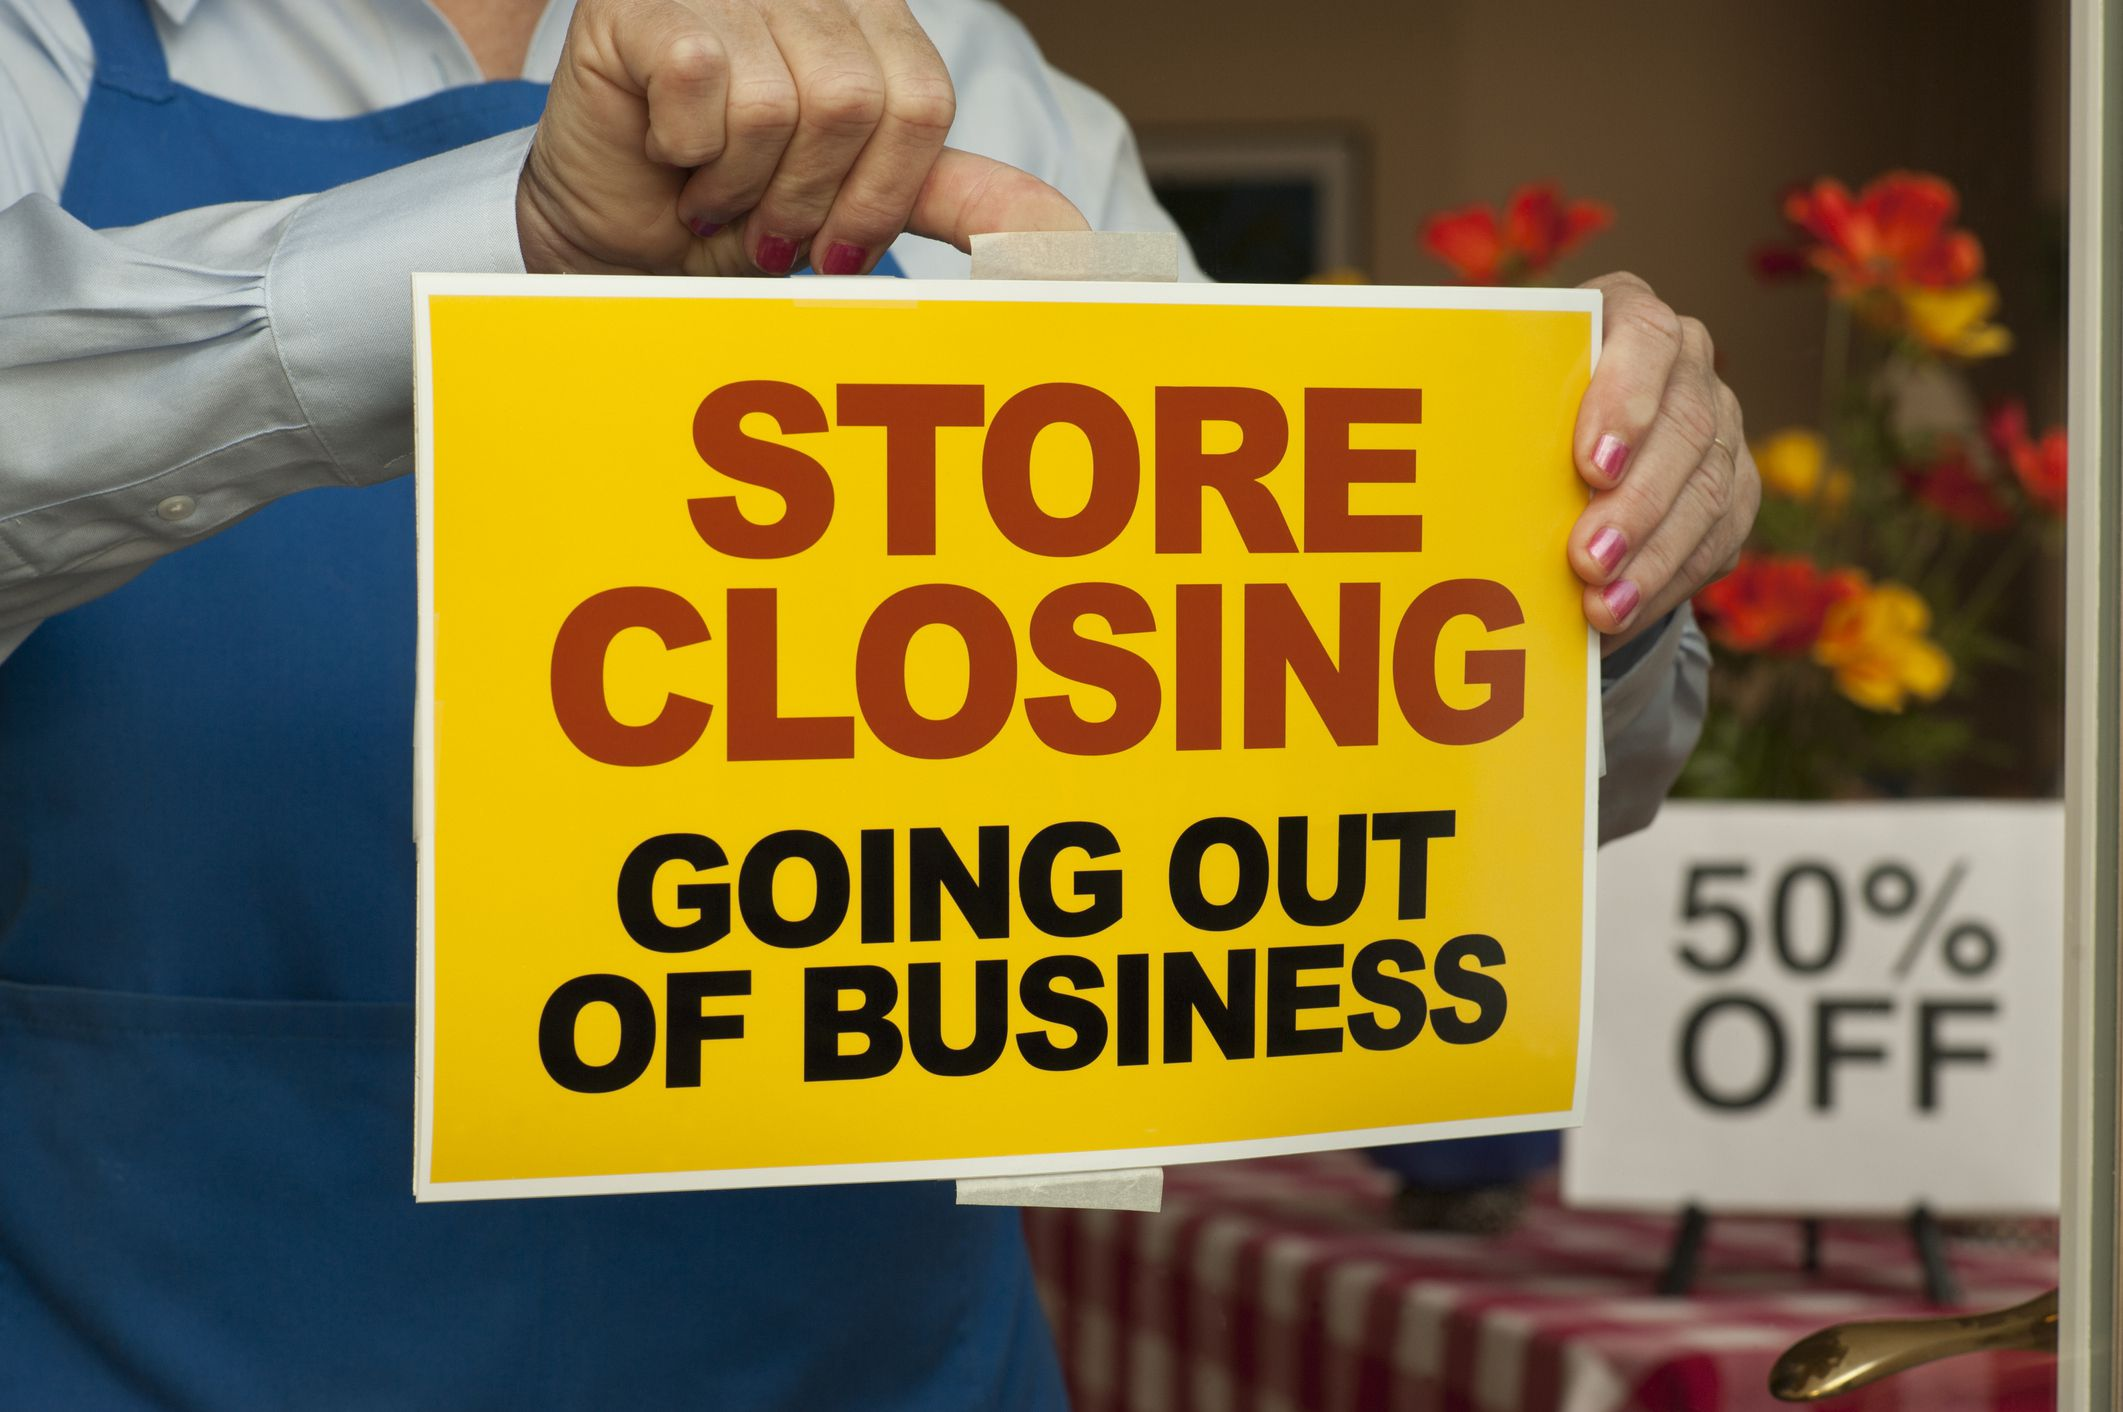 business closing going close retail businesses sign jobs stores operations shed sales past closures avoid fail reason amazon down discontinued